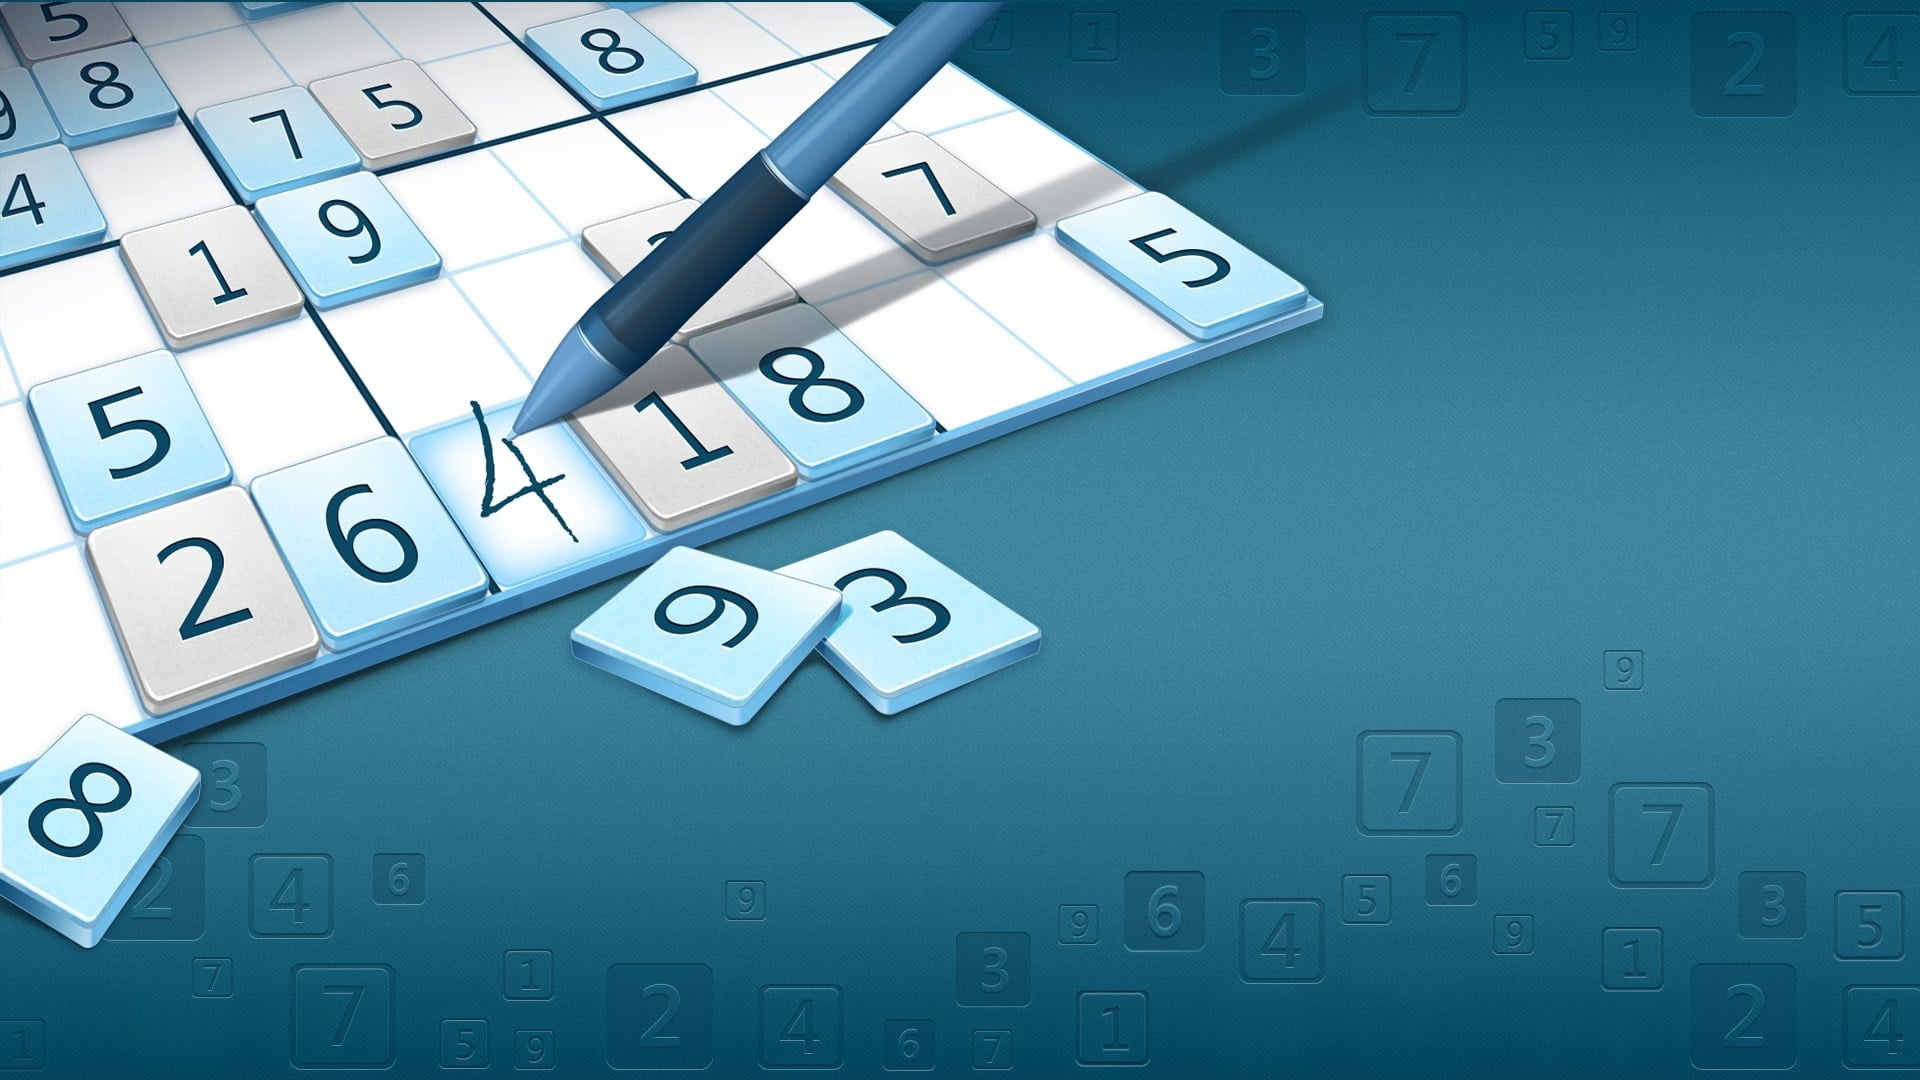 Microsoft Sudoku (Win 10) Achievement List Revealed tout Sudoku Gs